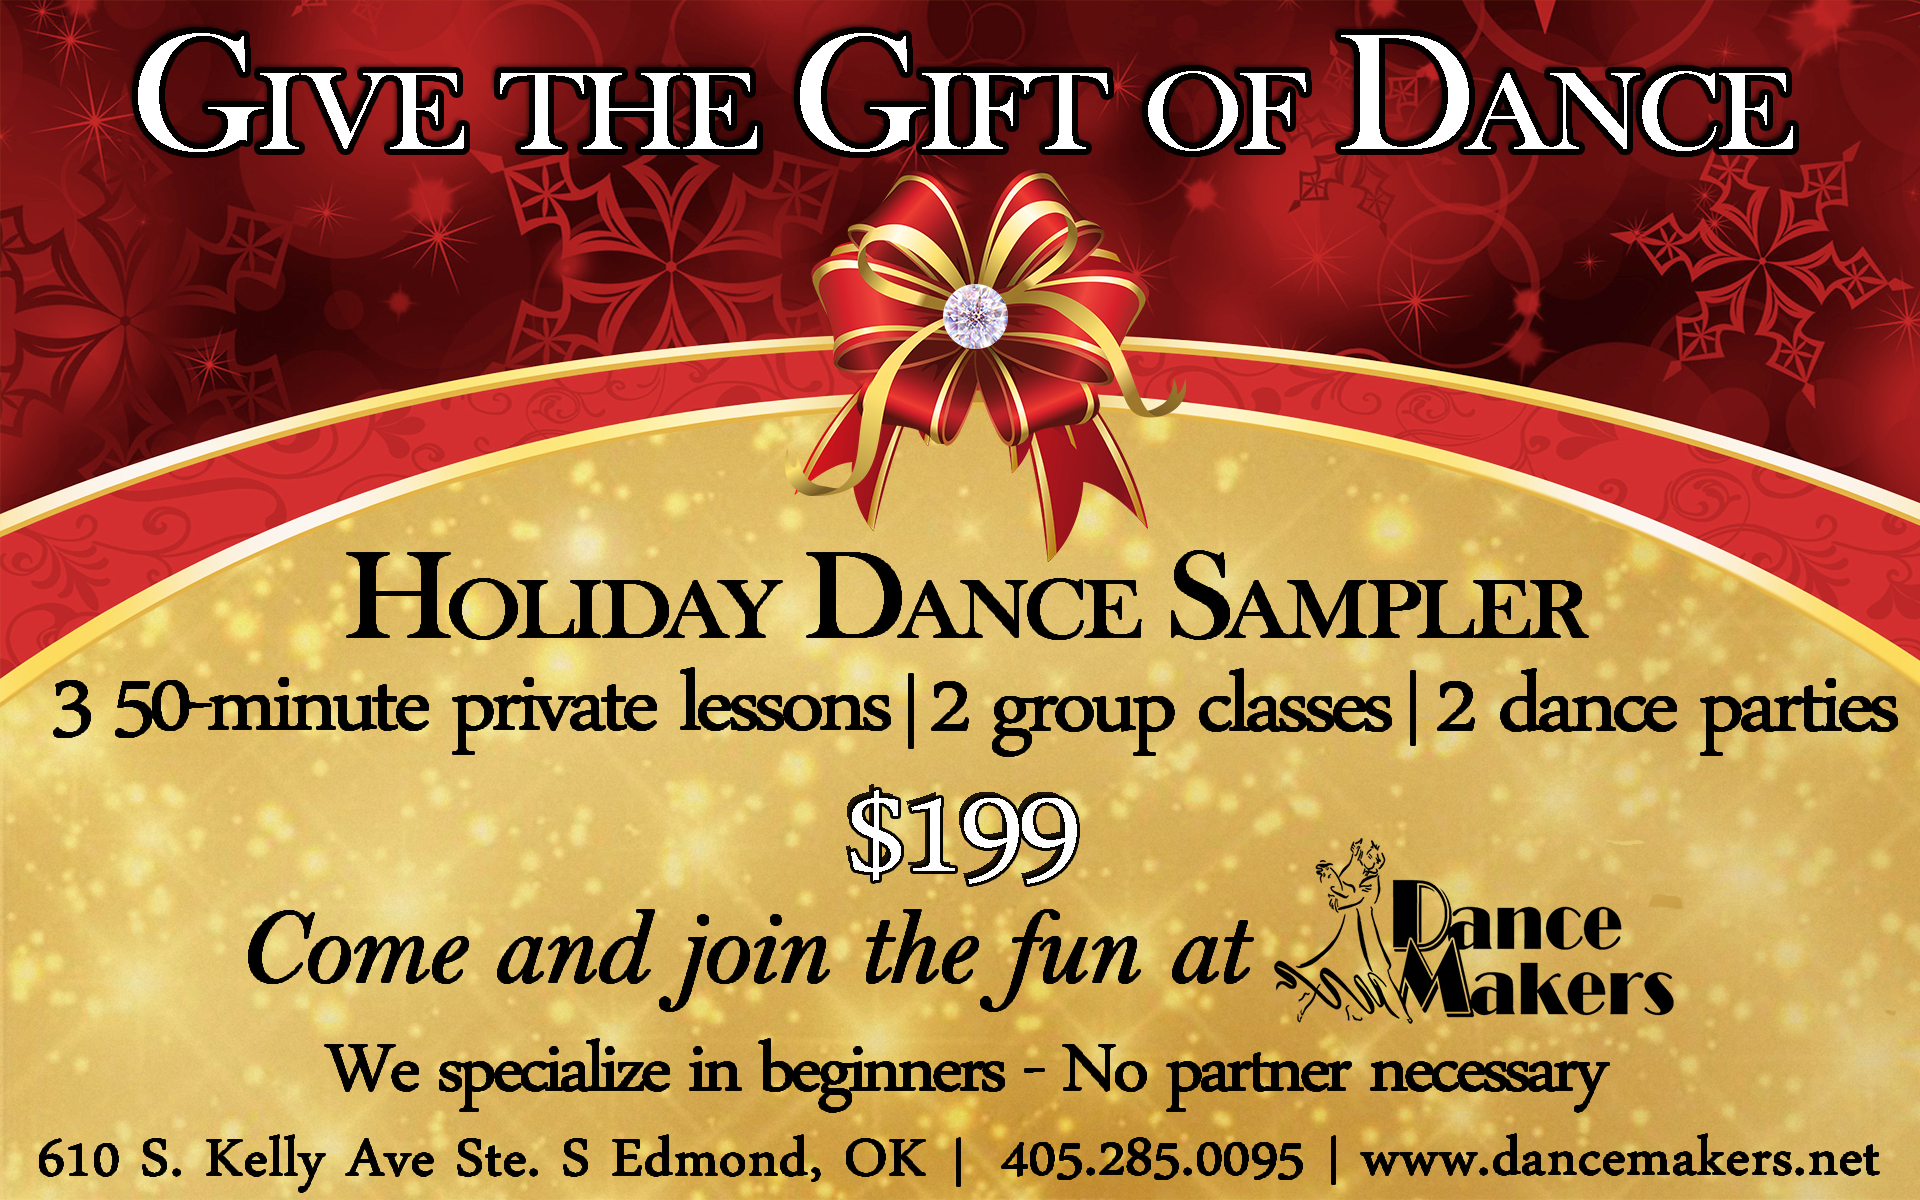 Holiday Dance Sampler